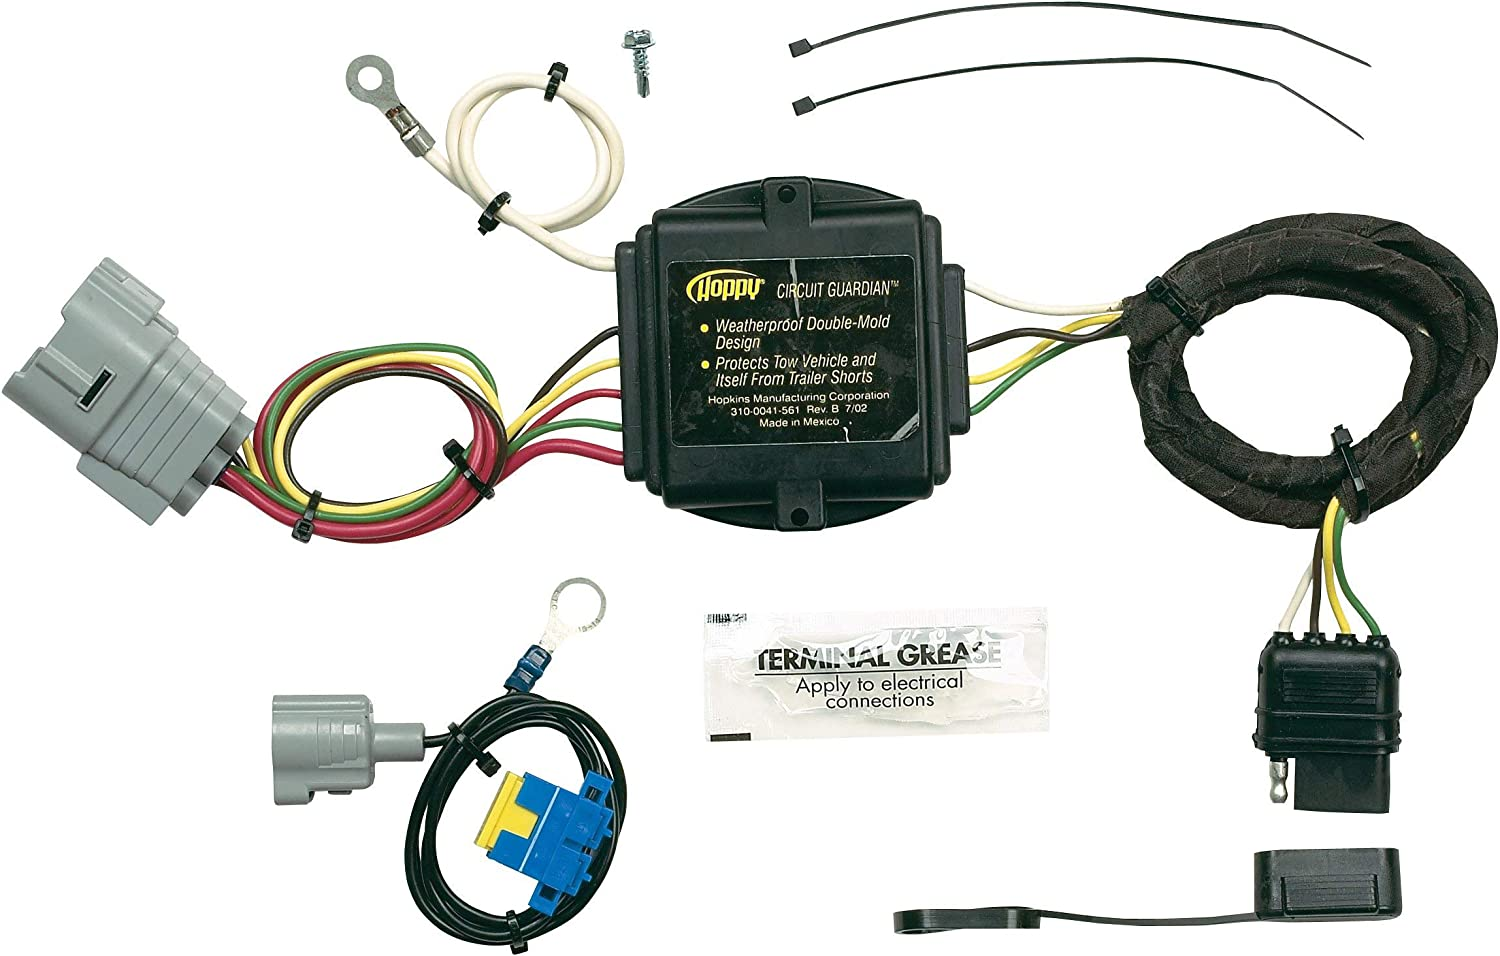 Amazon.com: Hopkins 43375 Plug-In Simple Vehicle Wiring Kit: Automotive | Tundra Wiring Harness |  | Amazon.com